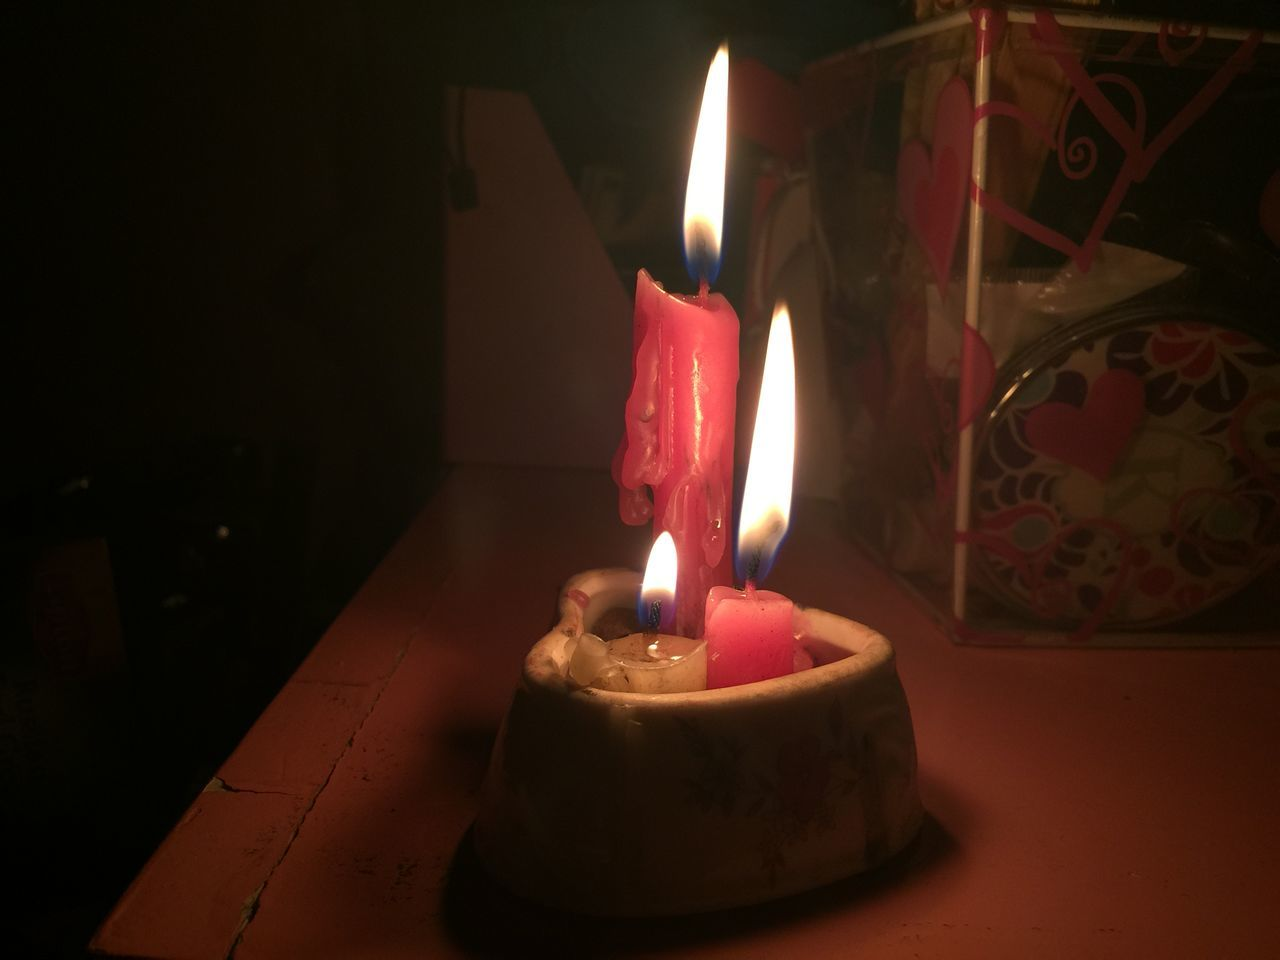 Burning Candle Candle Candle Light Candlelight Candles Darkroom Fire Fire - Natural Phenomenon Flame Flame Flames Glowing Heart Heat - Temperature Illuminated Indoors  Lighting Equipment Lit No People Now Oil Lamp Onfire Tea Light Three